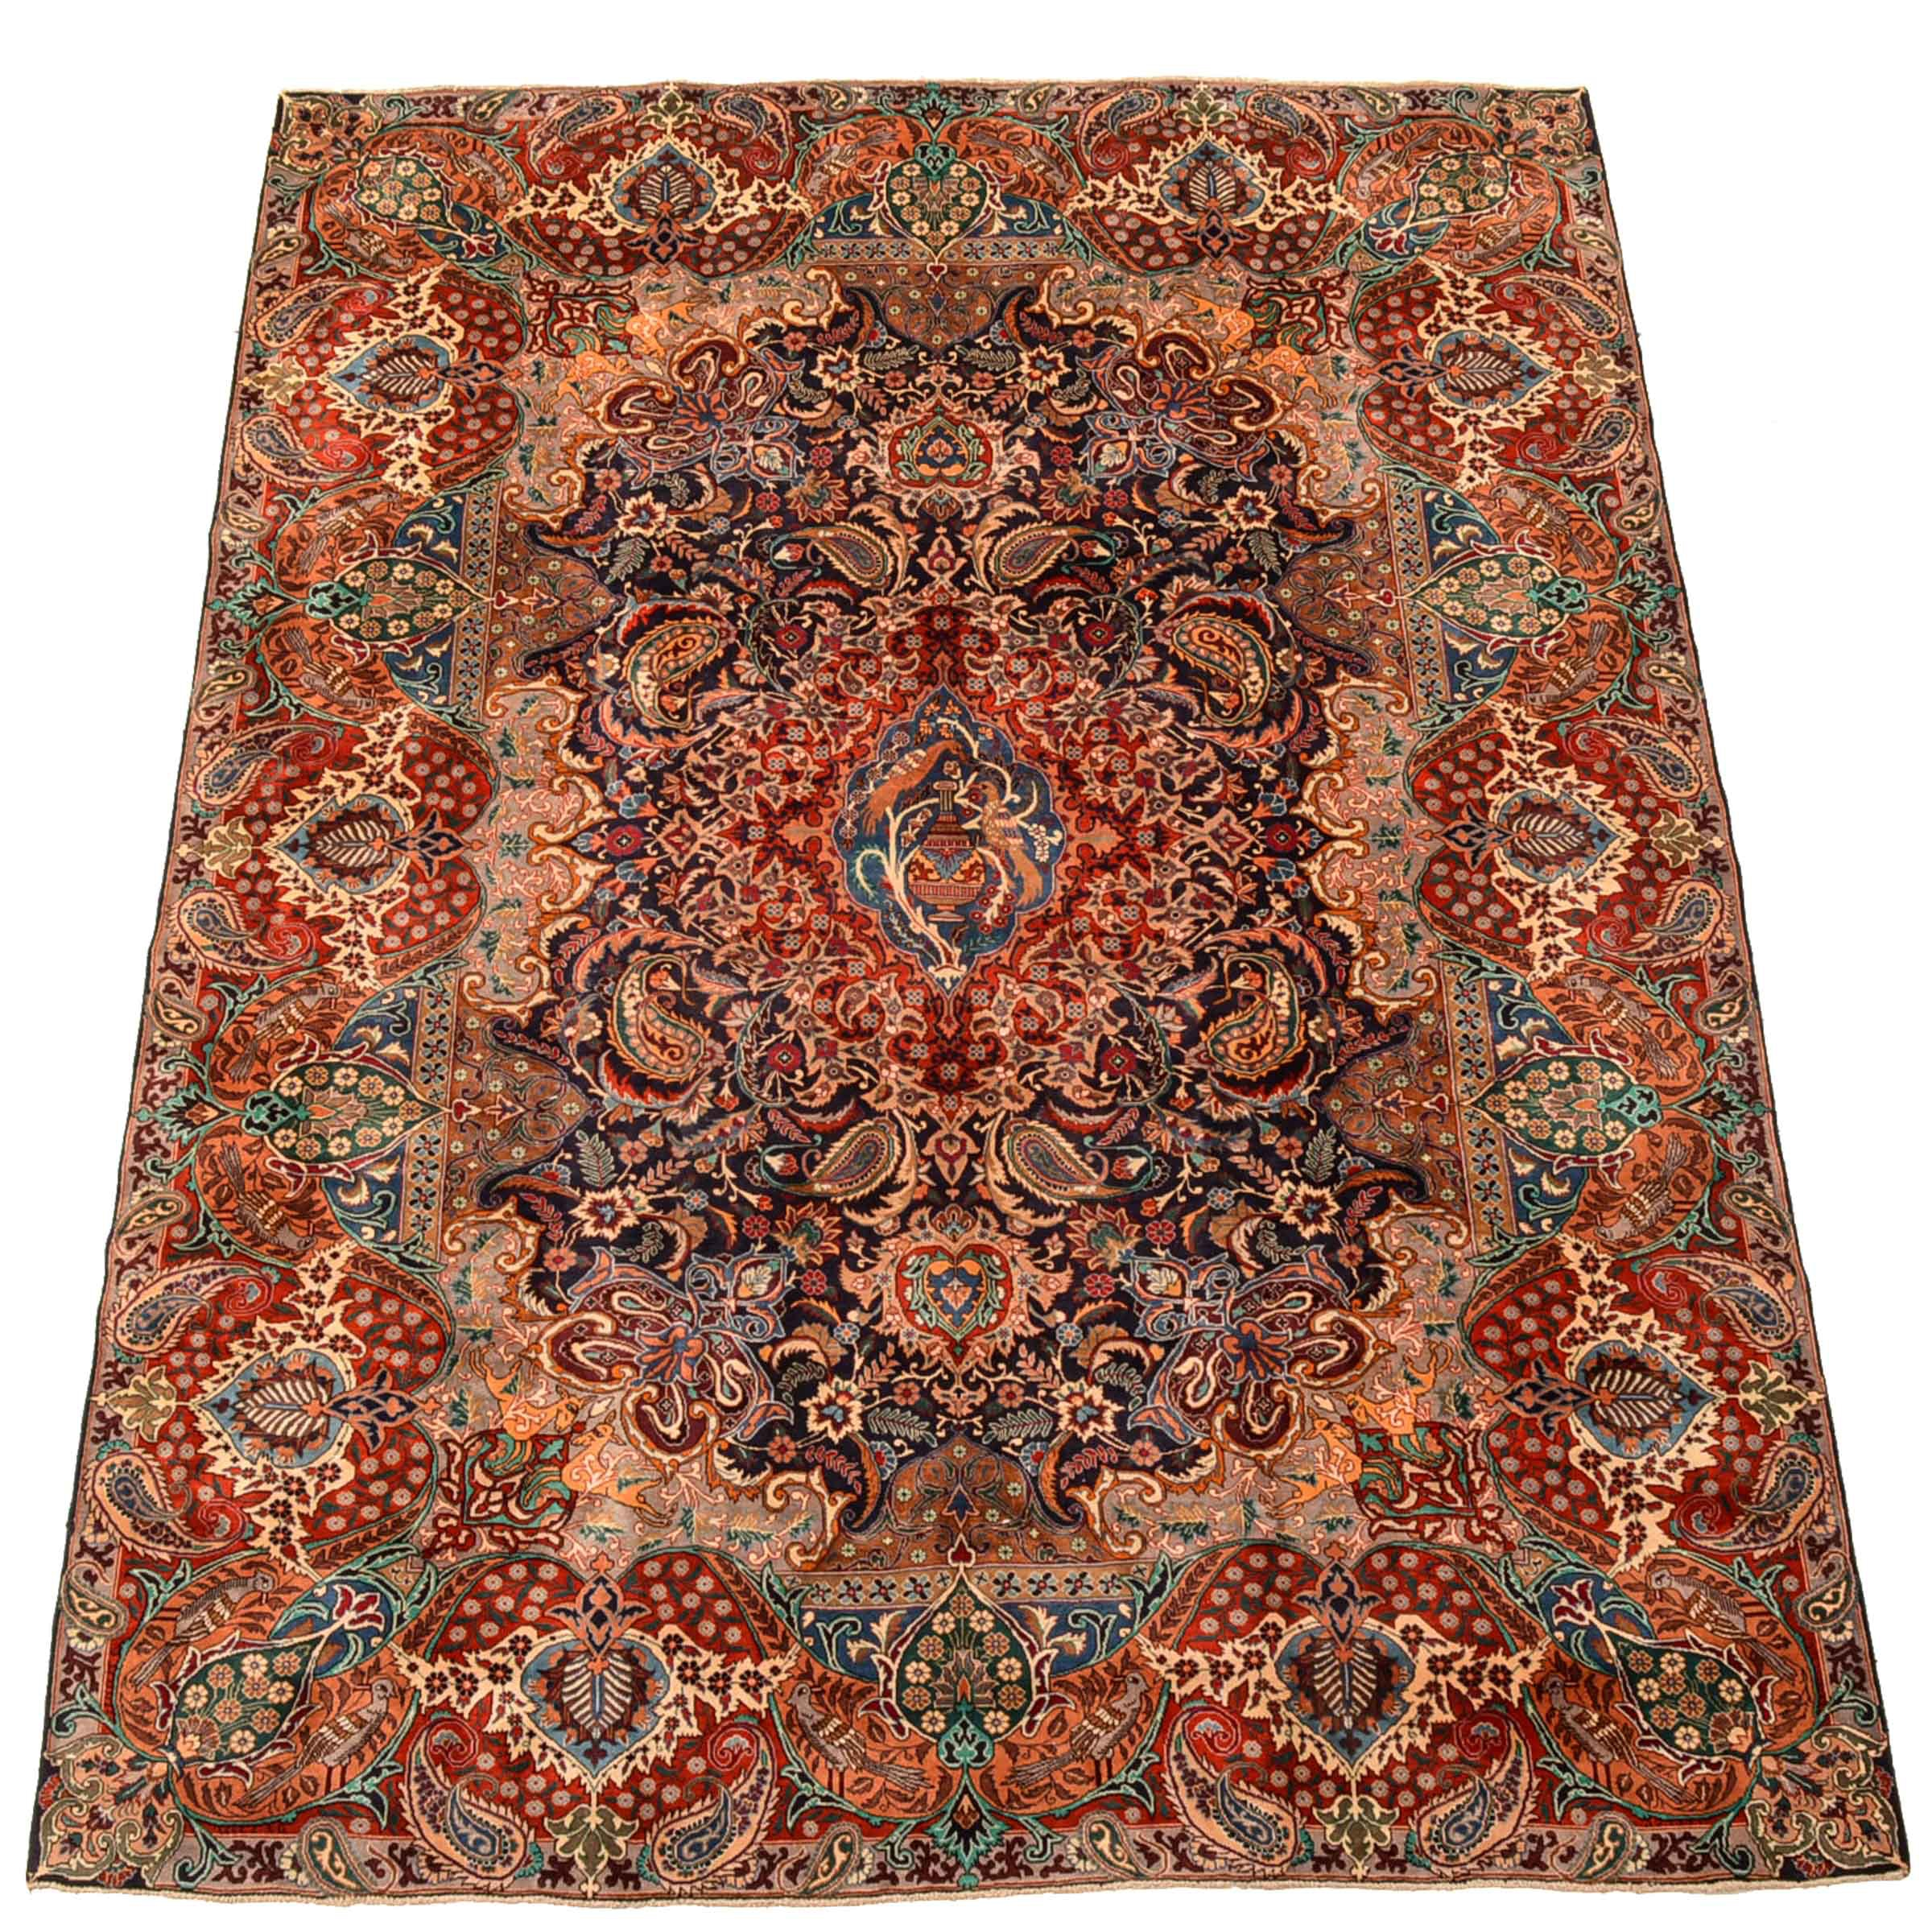 Vintage Hand-Knotted Persian Pictorial Kashan Room-Size Rug